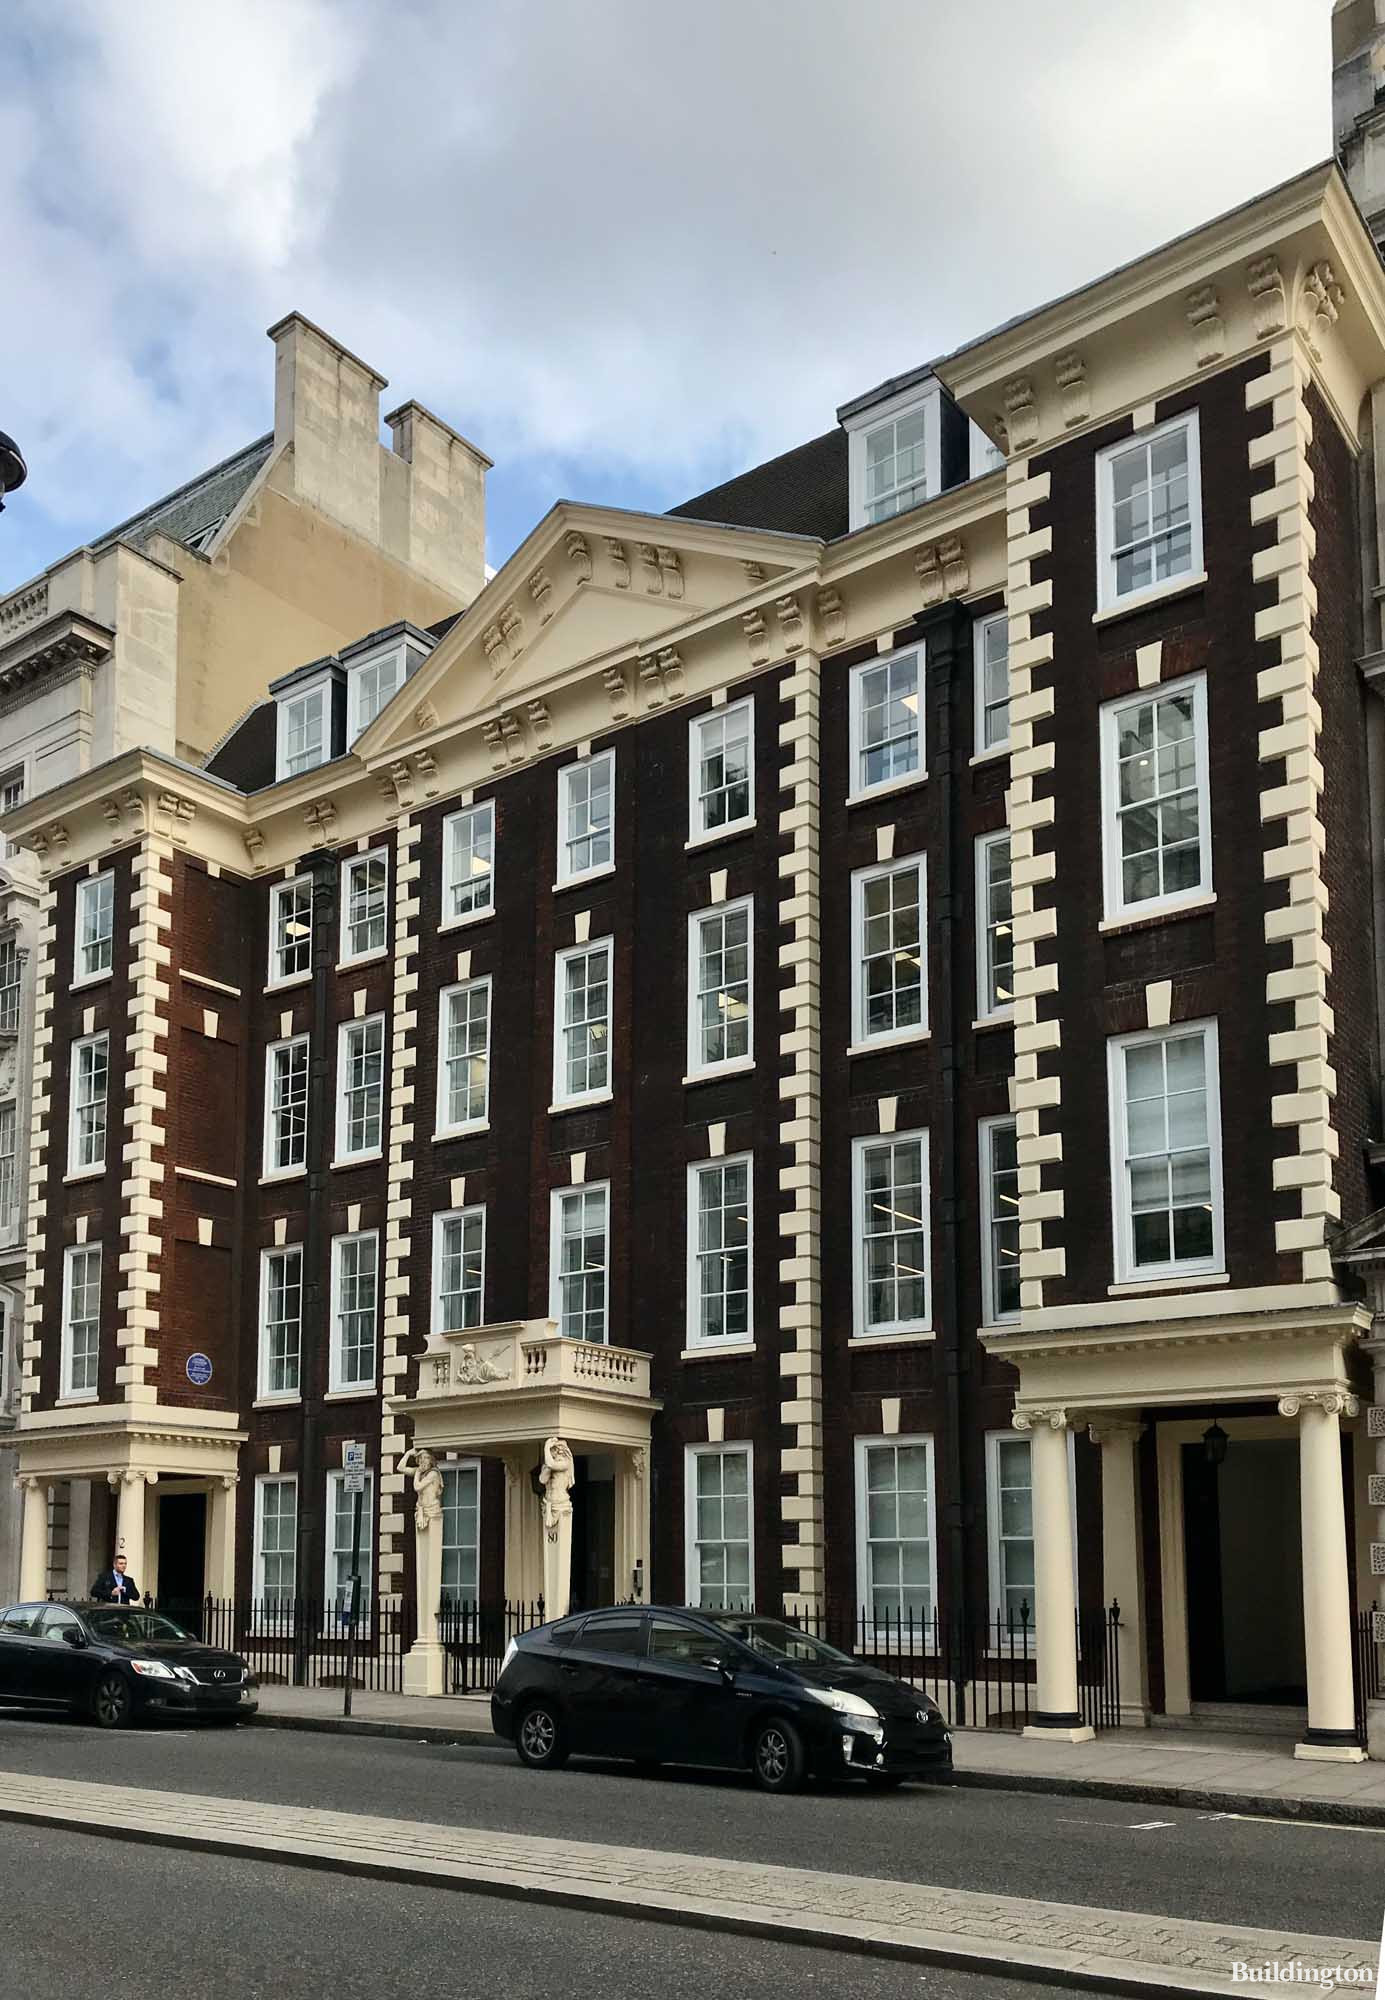 Schomberg House on Pall Mall in London SW1.